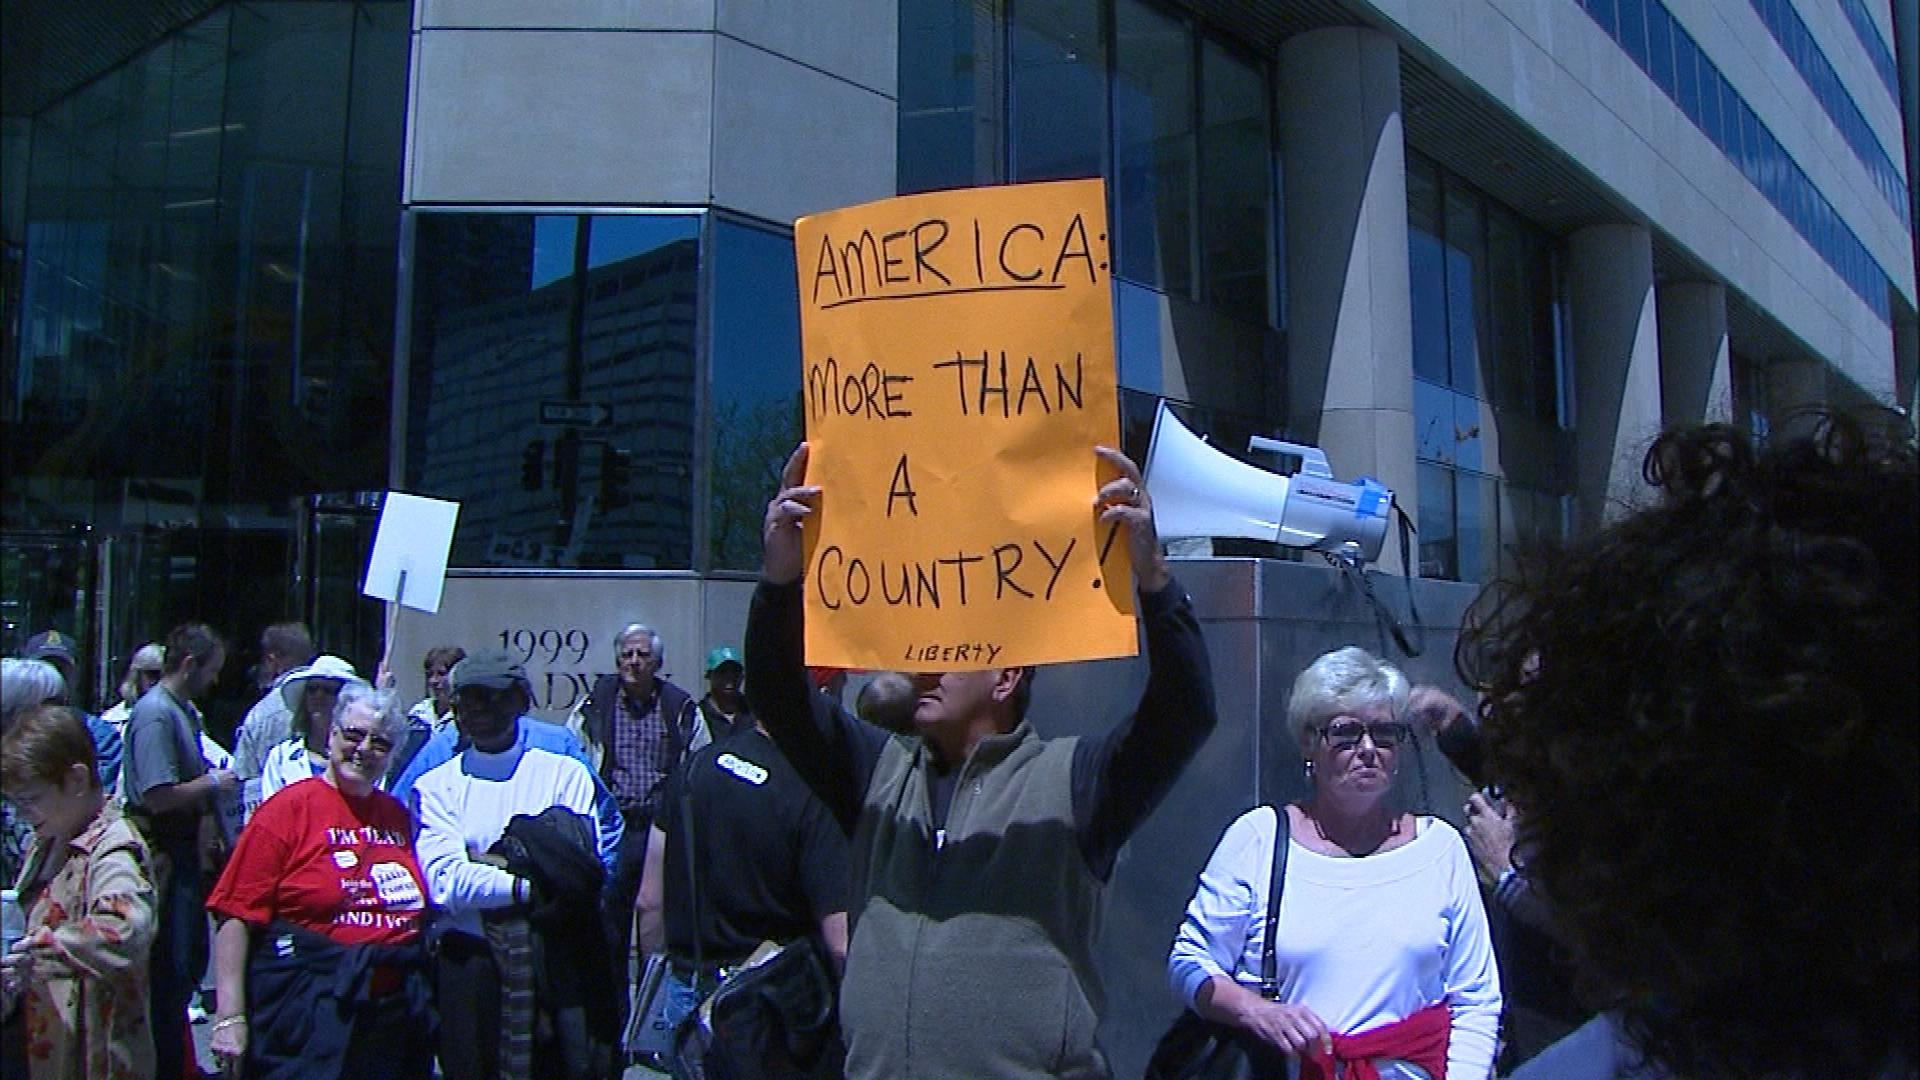 The Tea Party protest the IRS office in Denver on Tuesday (credit: CBS)